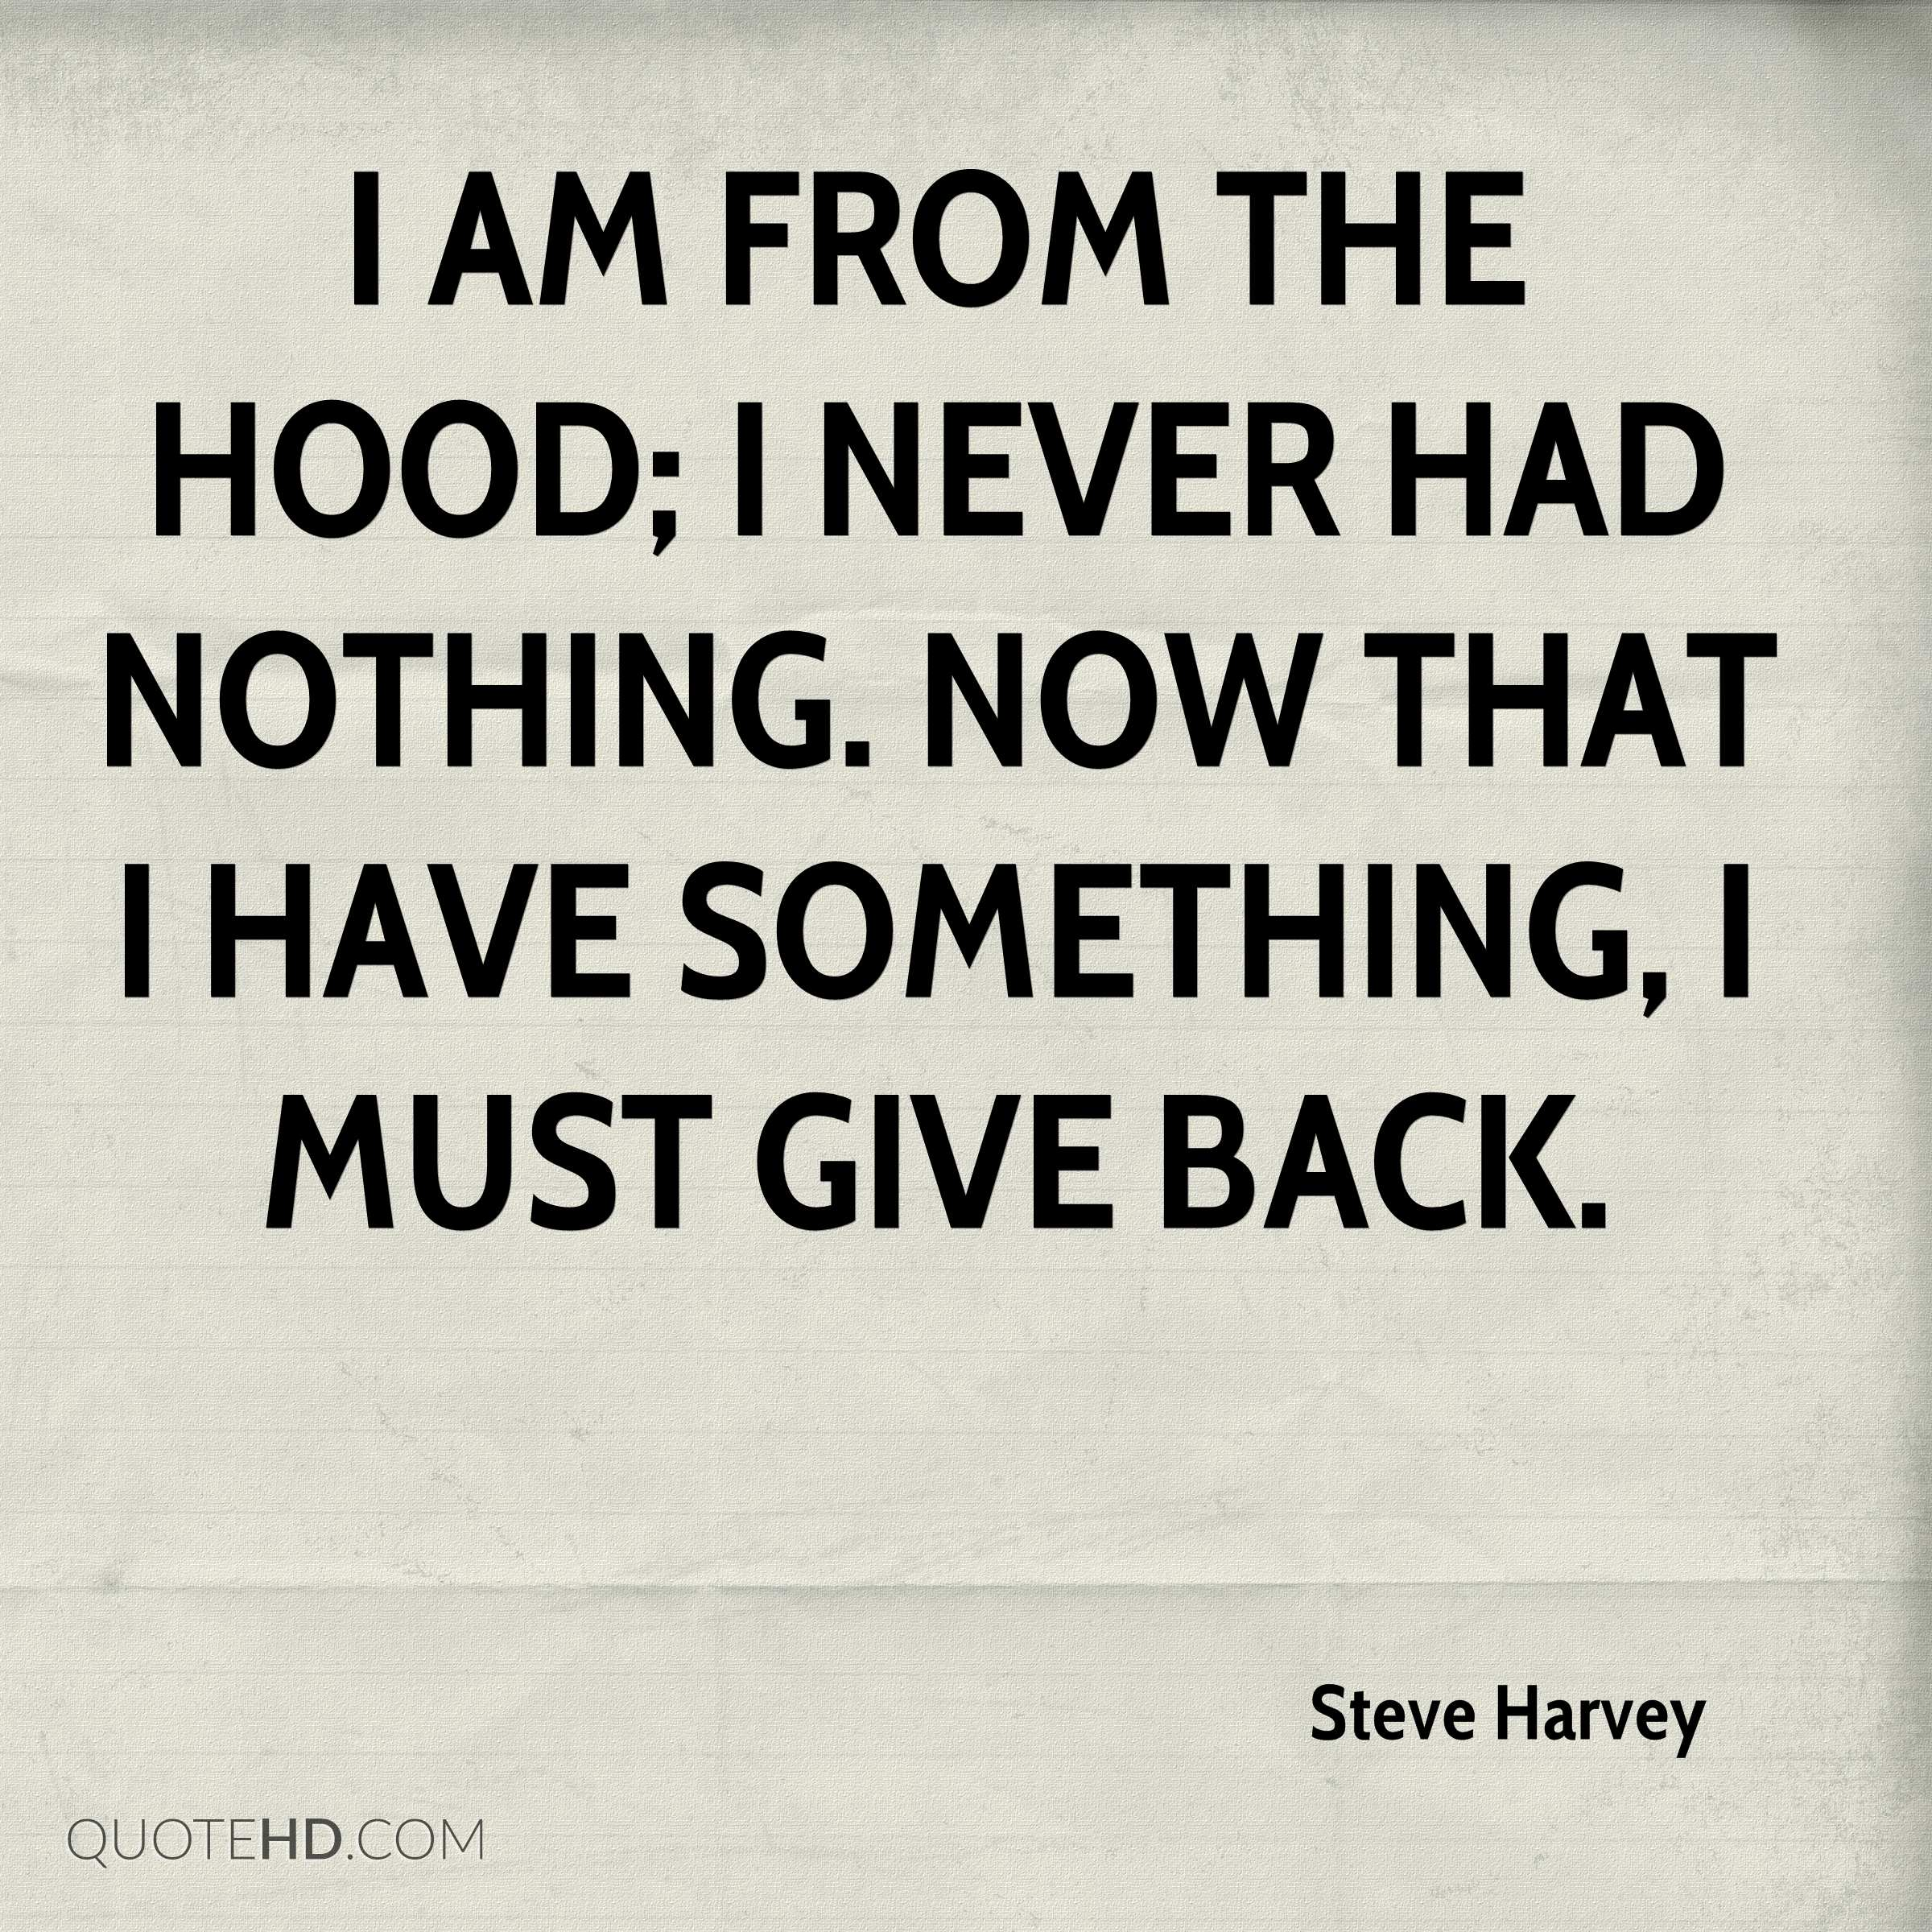 Life In The Hood Quotes Images: Steve Harvey Quotes